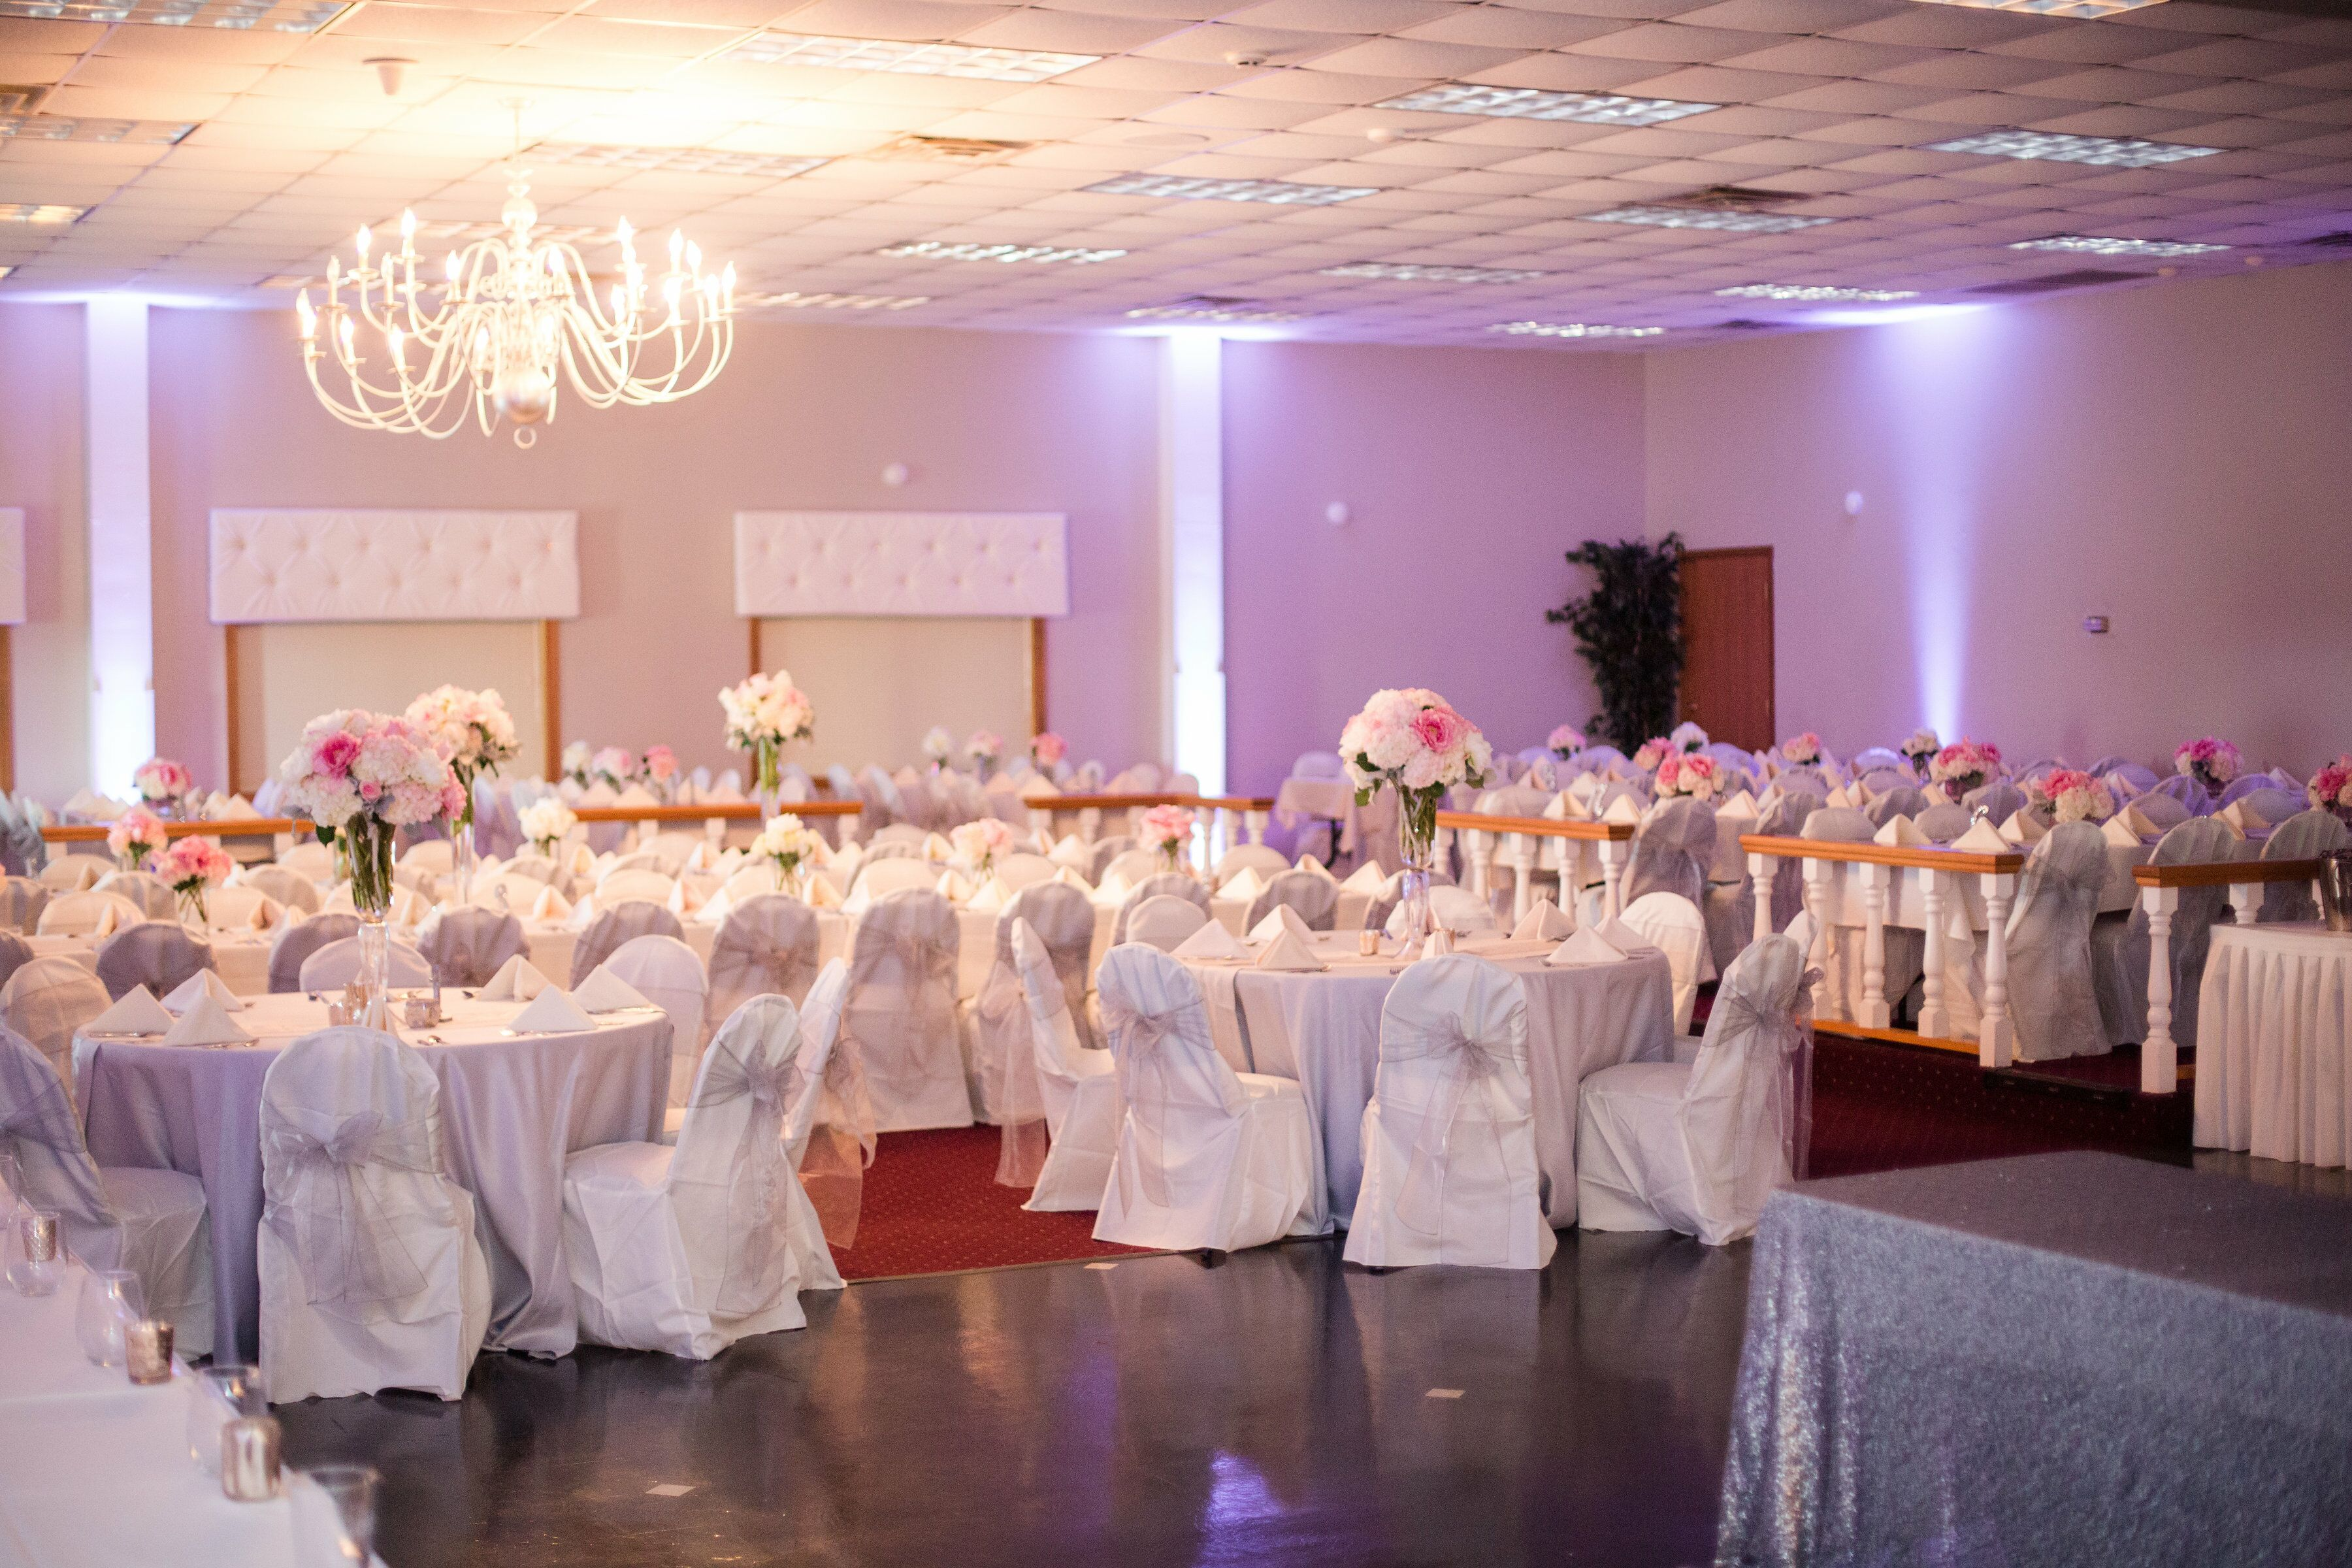 Wedding Venues in Peoria, IL - The Knot